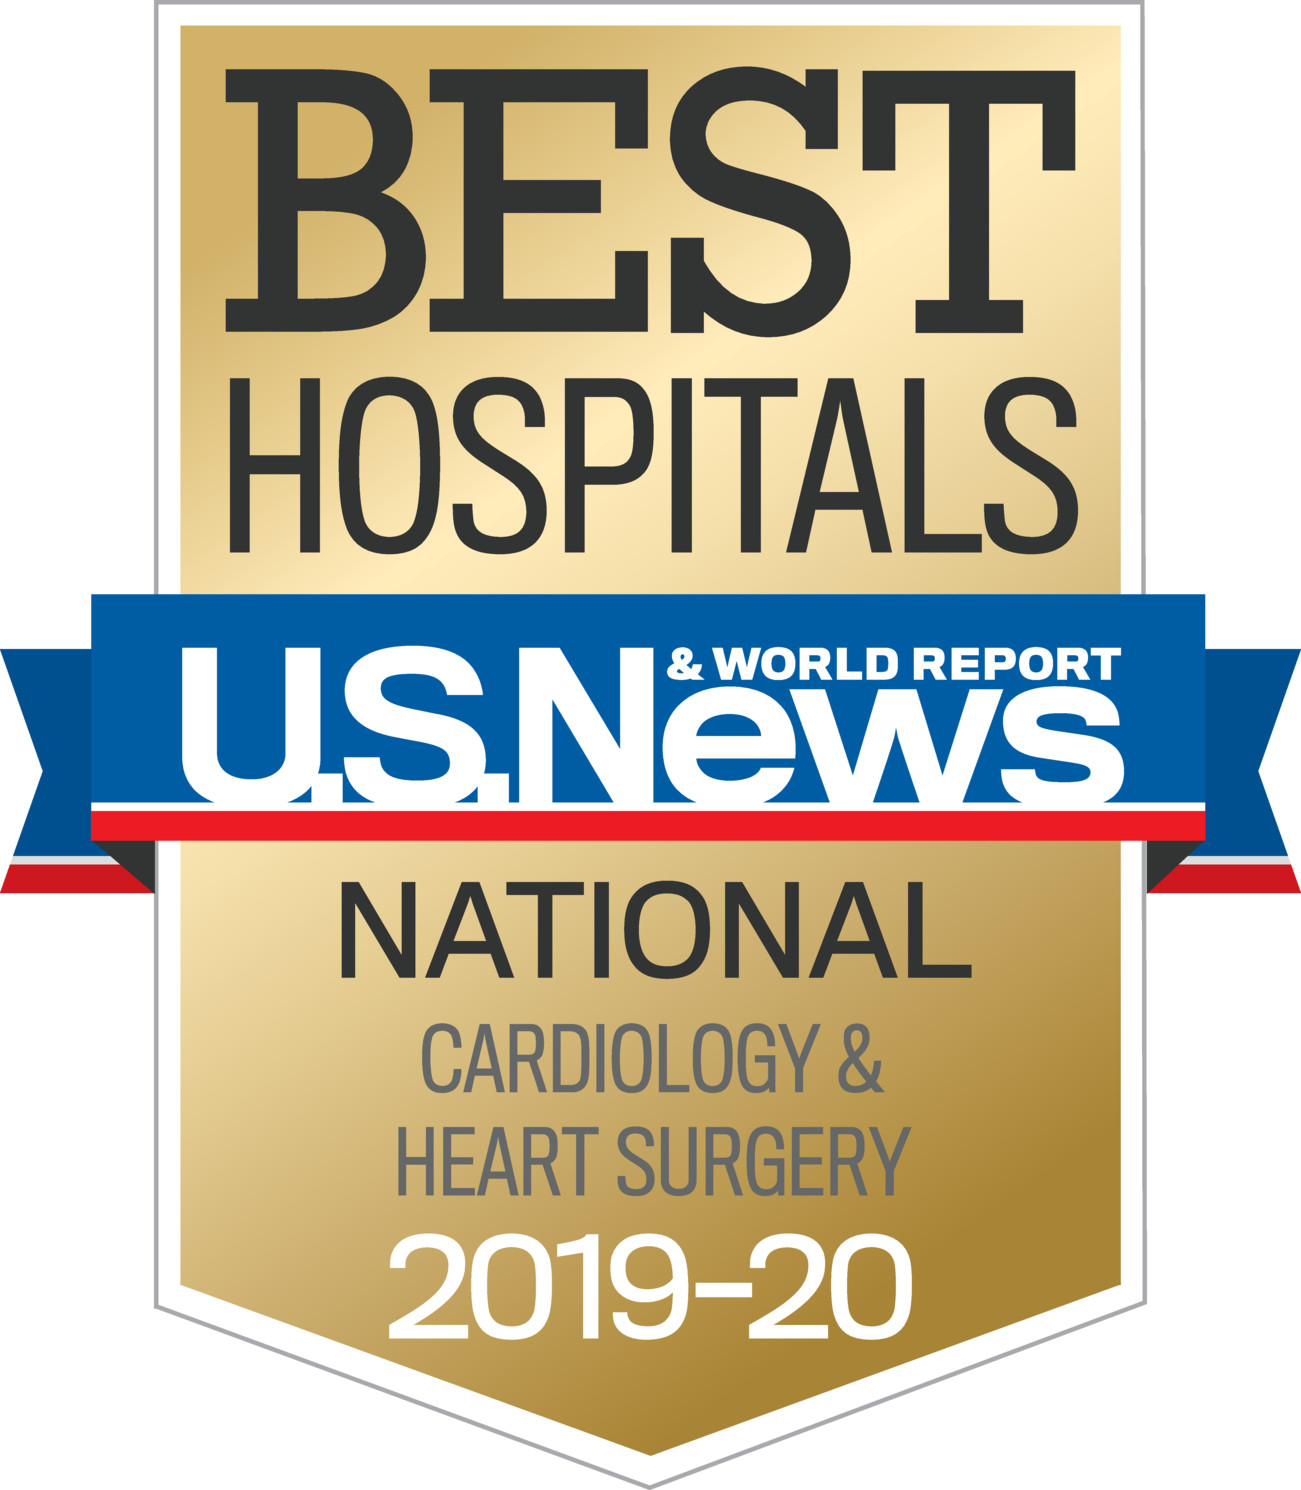 U.S. News 2019 Best Hospital - Cardiology